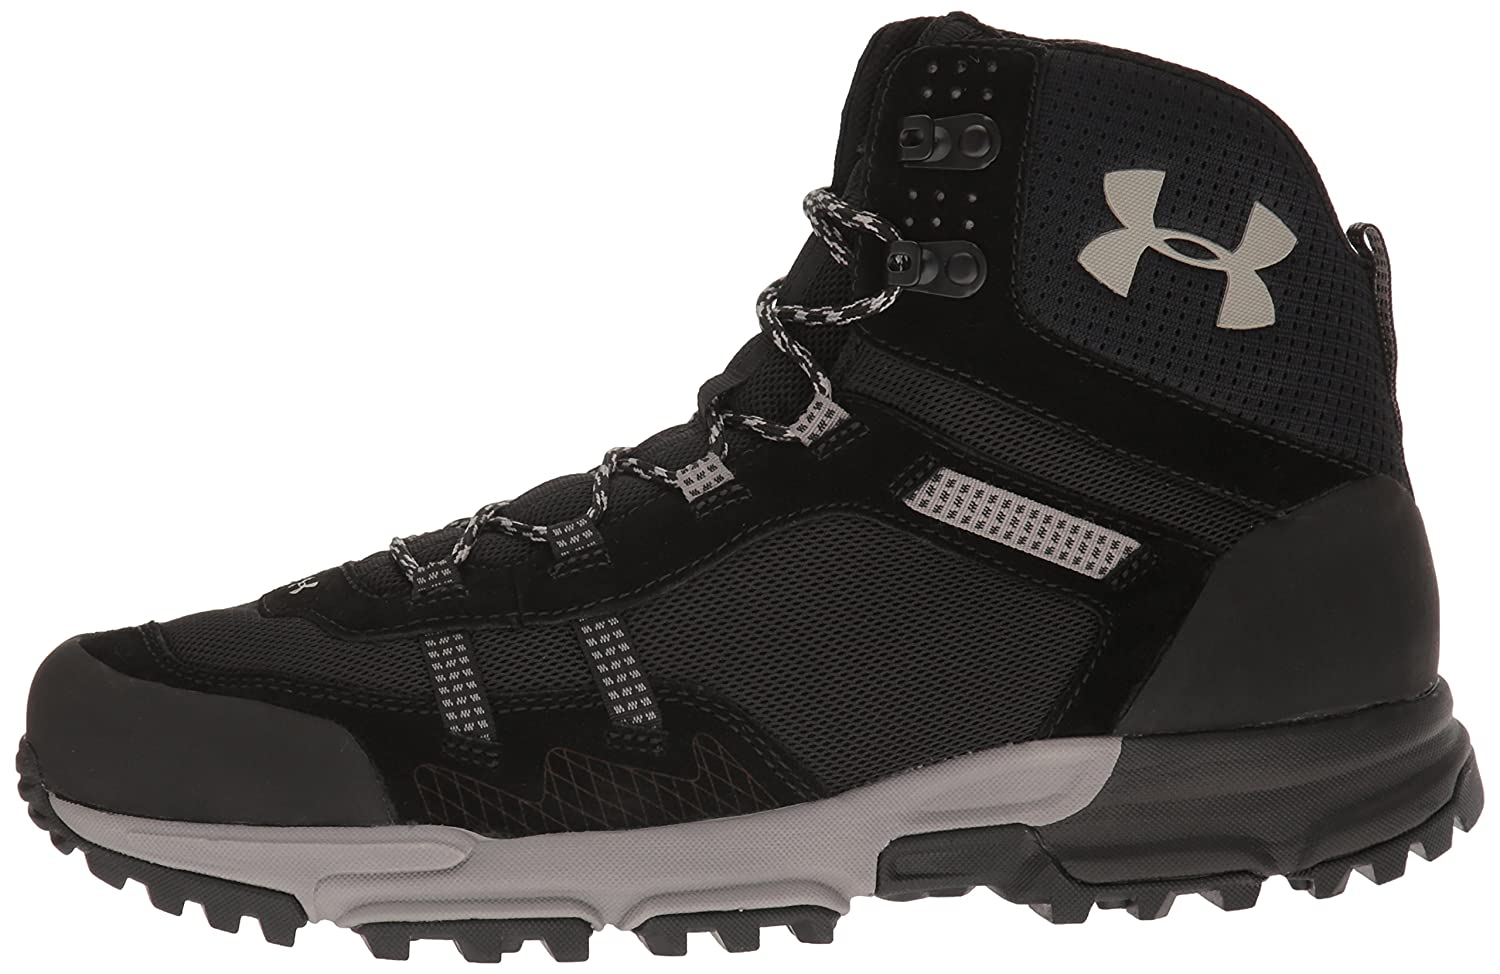 Under Armour Mens Post Canyon Mid Hiking Boot Under Armour Shoes 3000027